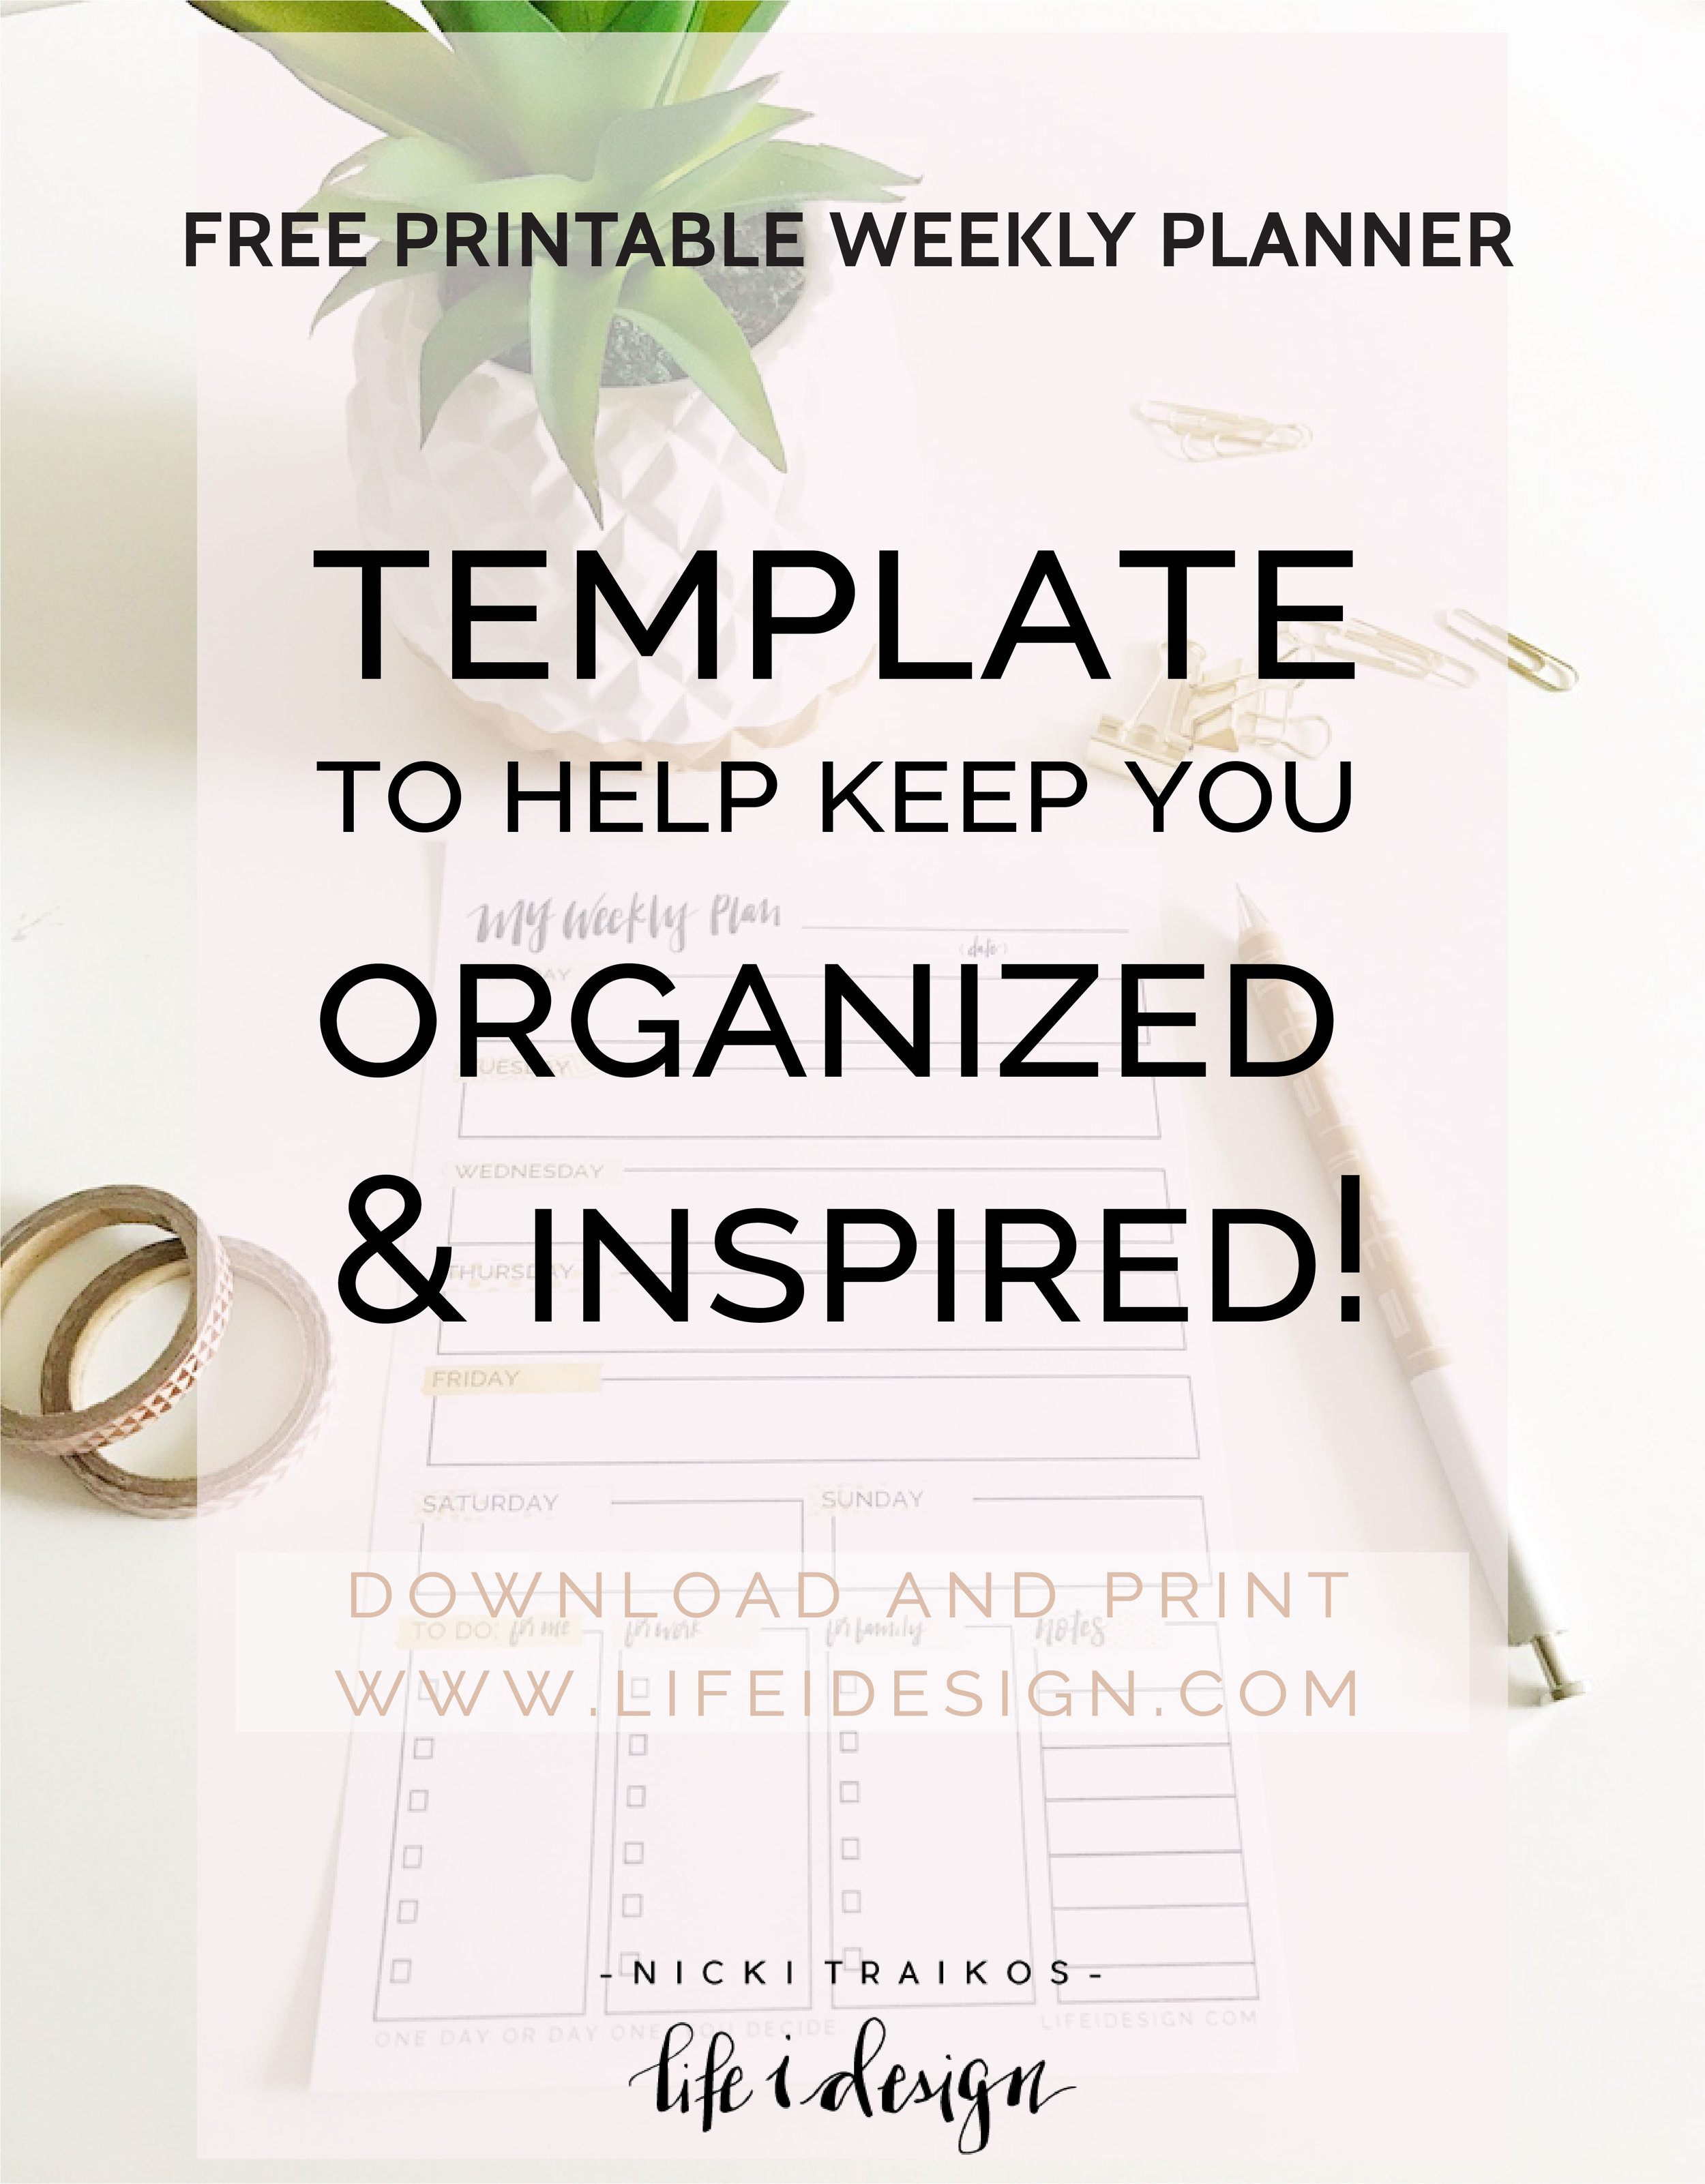 Weekly Planner Template - Everyone needs a system to help stay organized and sane right??!  I've designed these printable weekly planner templates for you to use, to help keep you organized and on top of your hectic schedule!